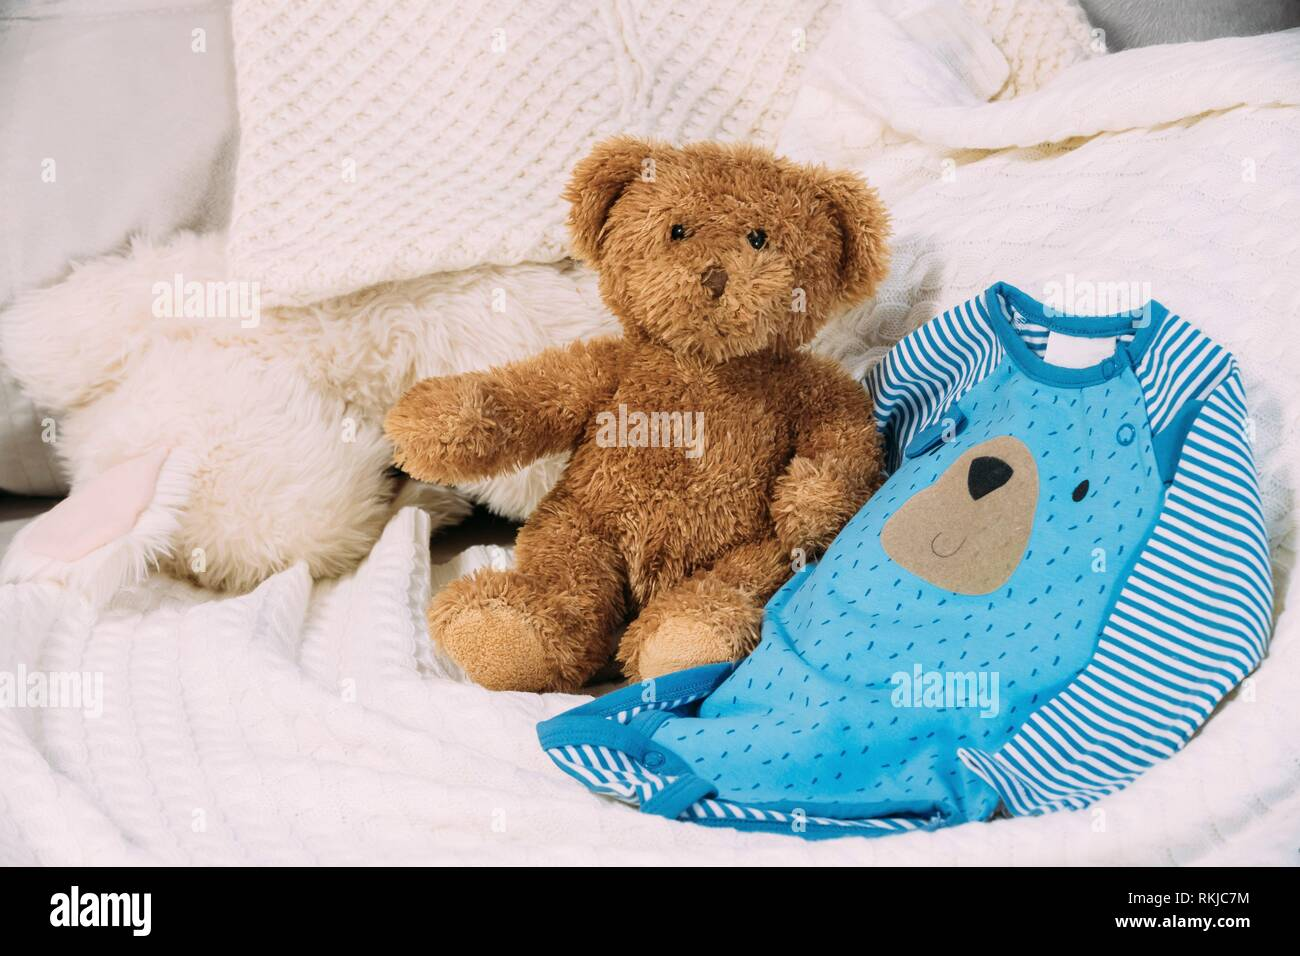 Funny Soft Toy Teddy Bear Near Child's Baby Clothes Rompers. - Stock Image